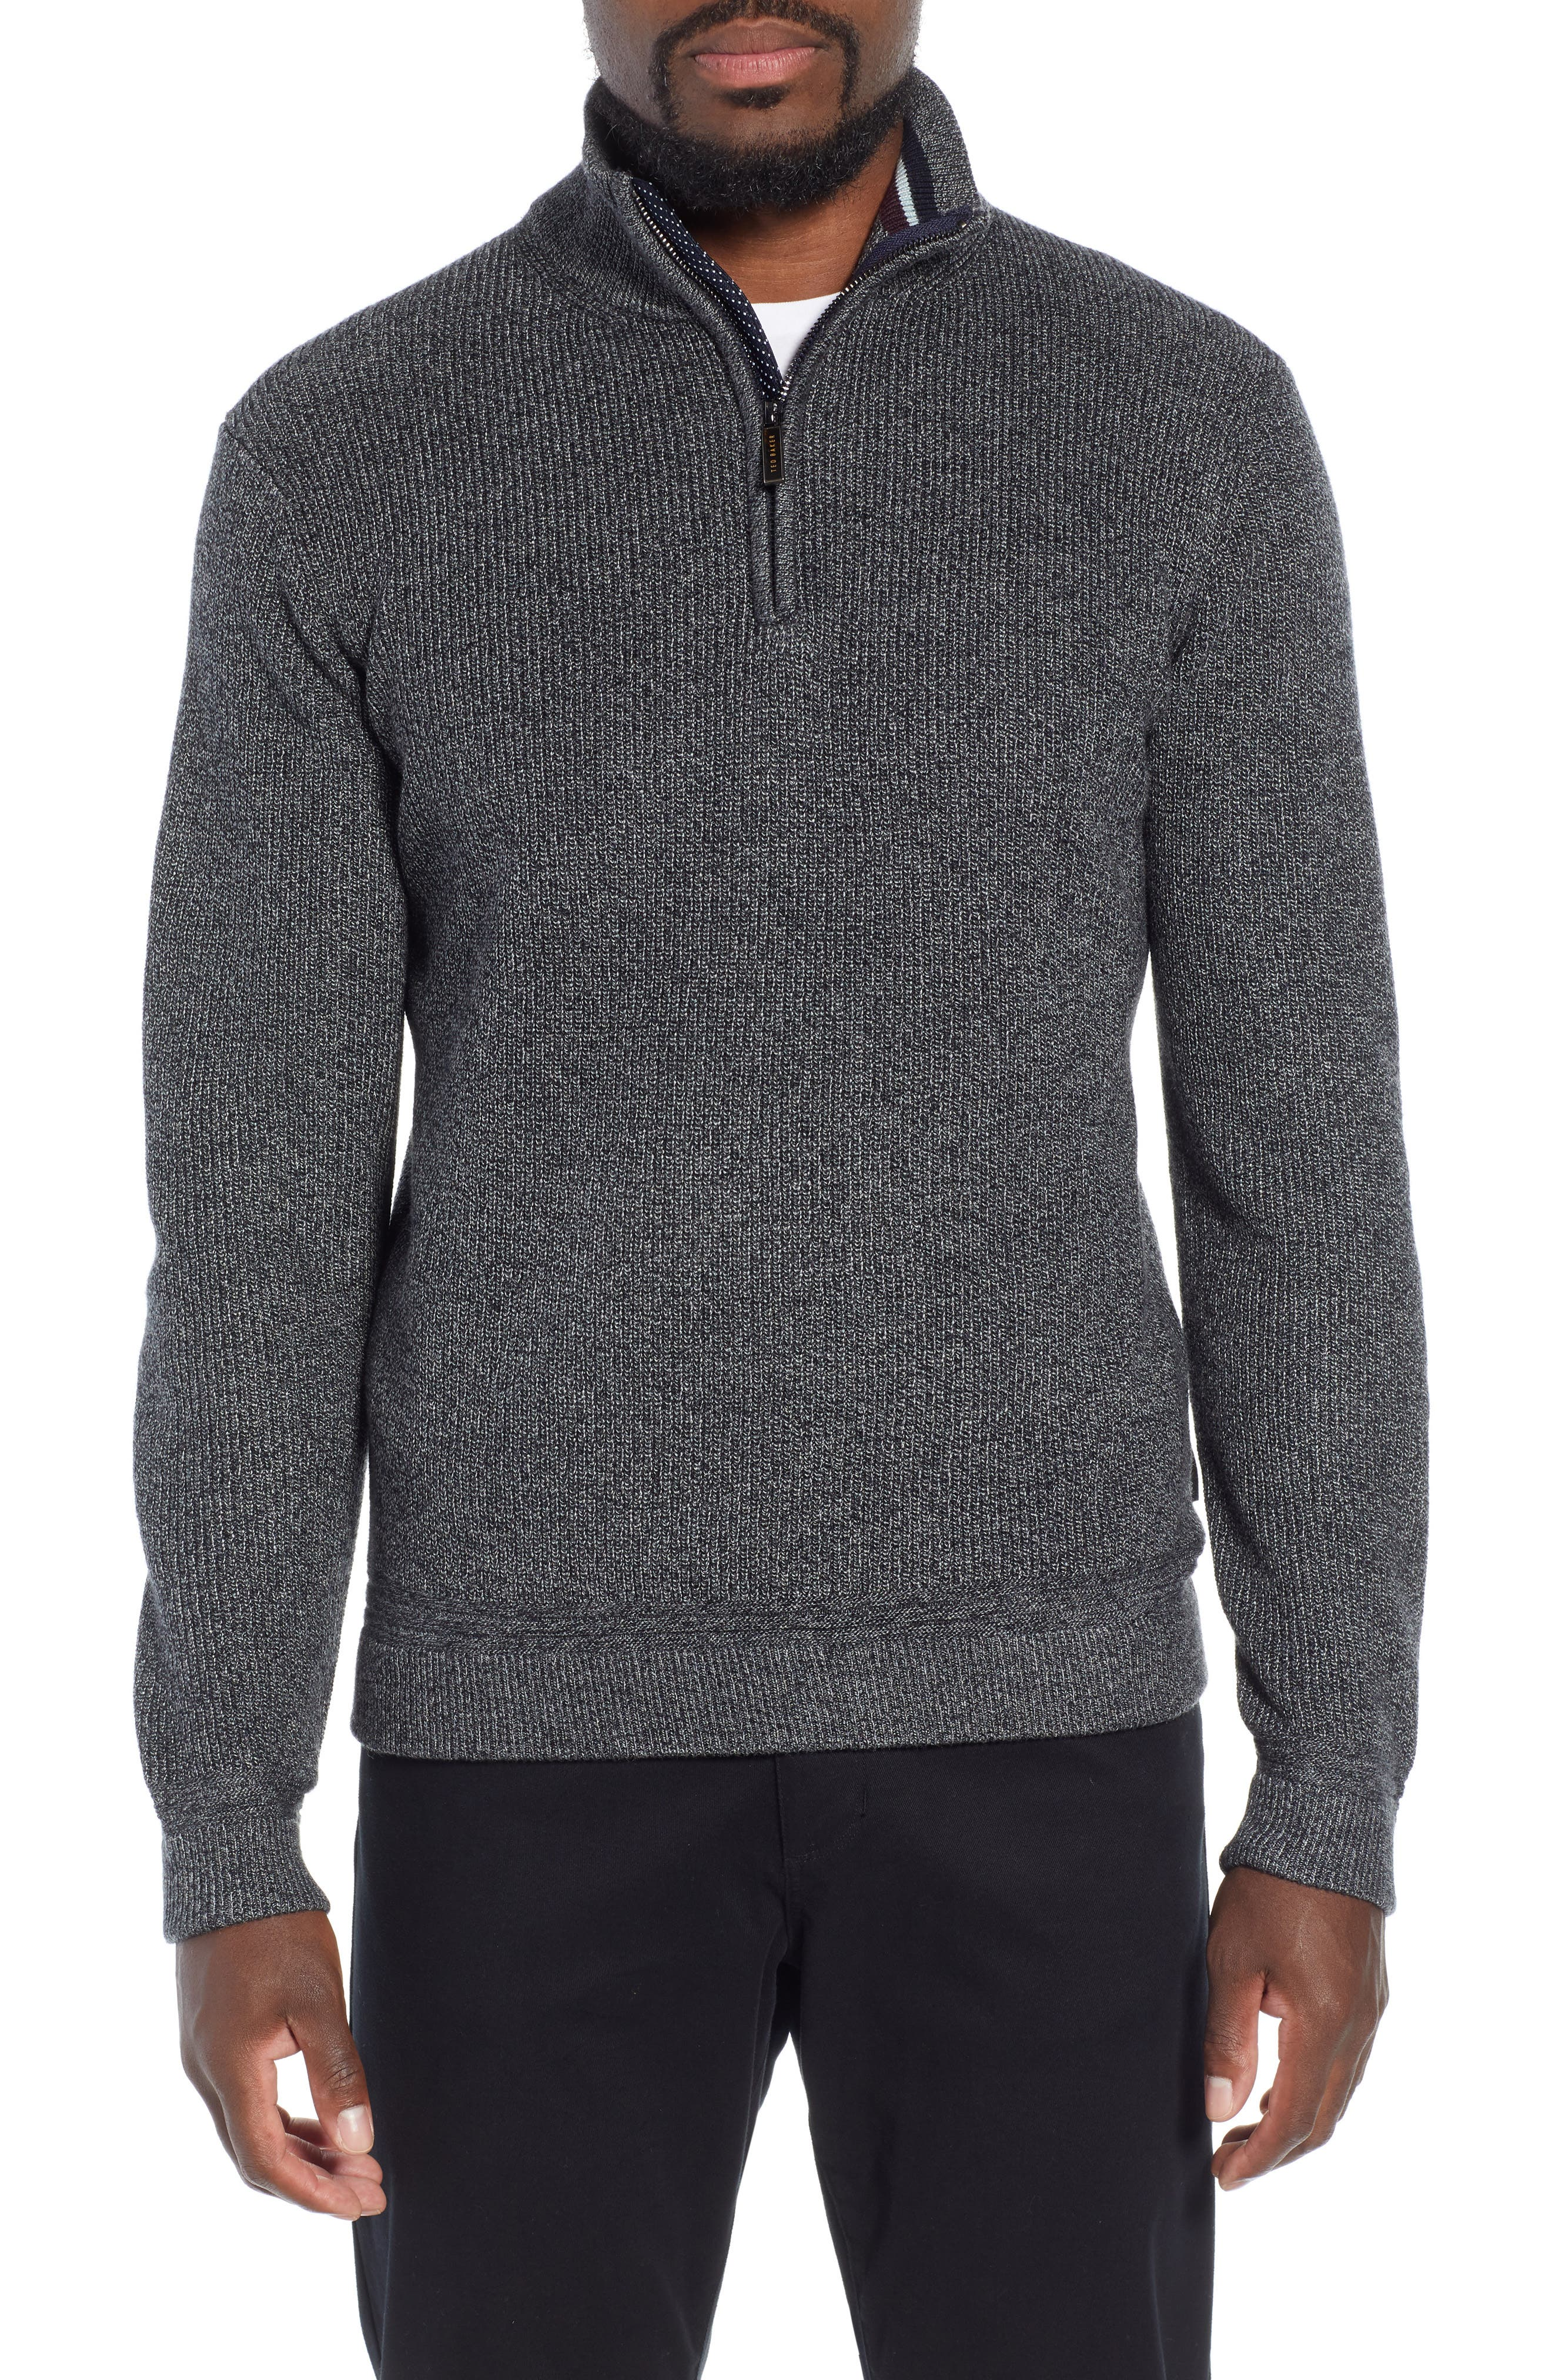 Lohas Slim Fit Funnel Neck Sweater,                         Main,                         color, CHARCOAL